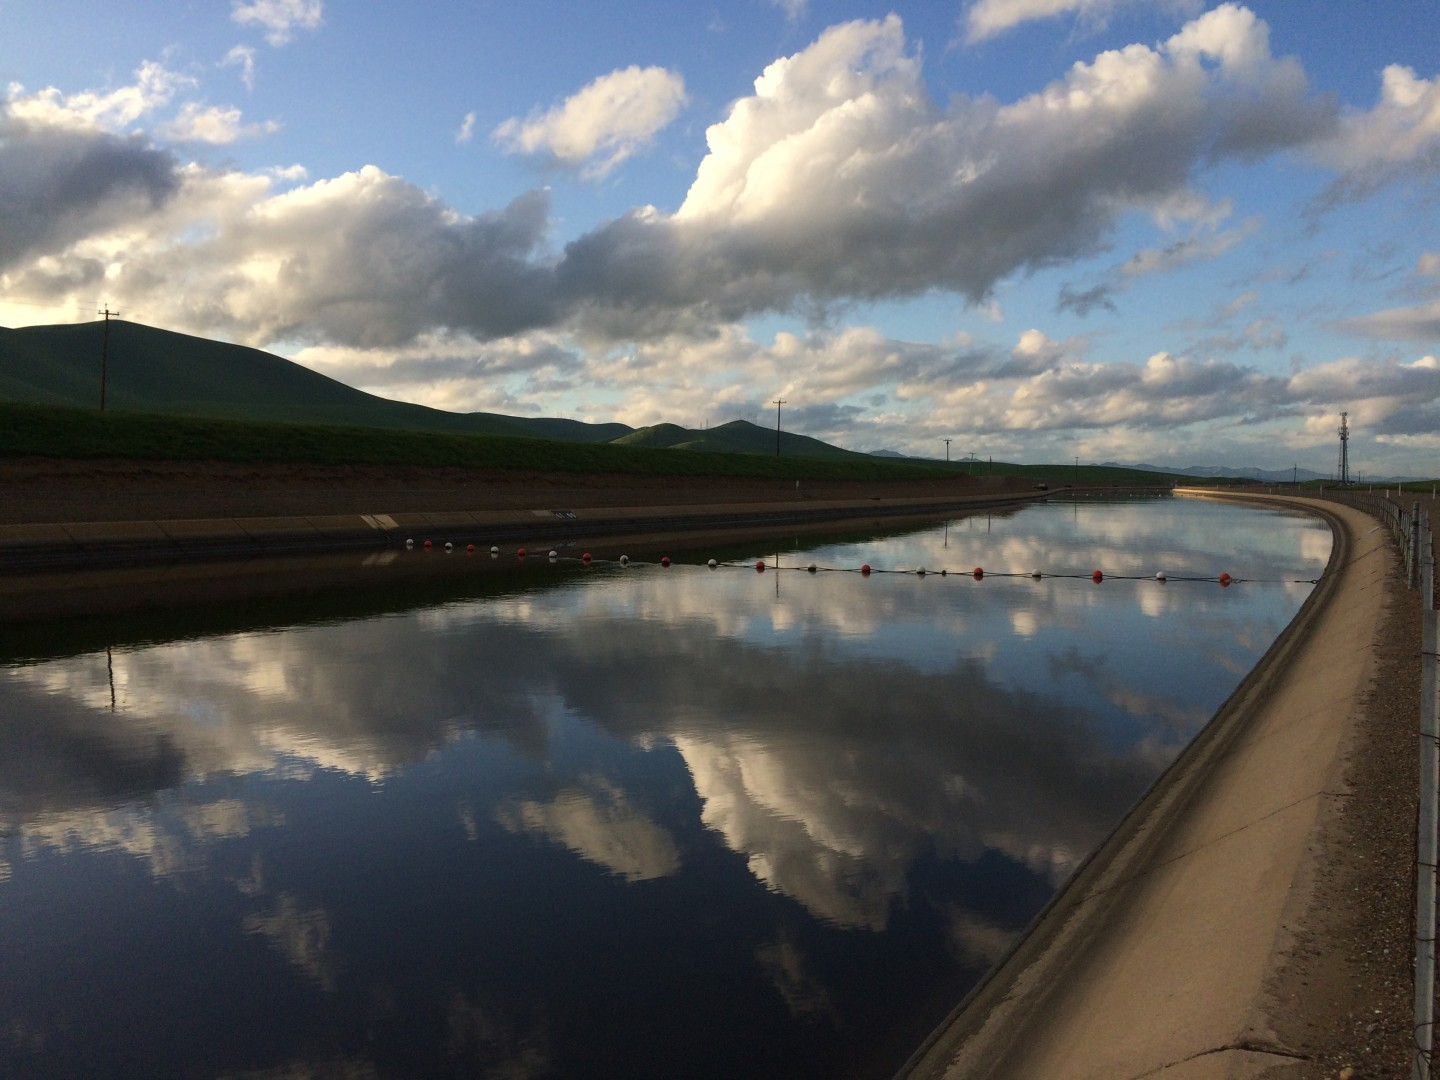 The California Aqueduct near the San Joaquin Valley of Gustine. Dan Brekke/KQED